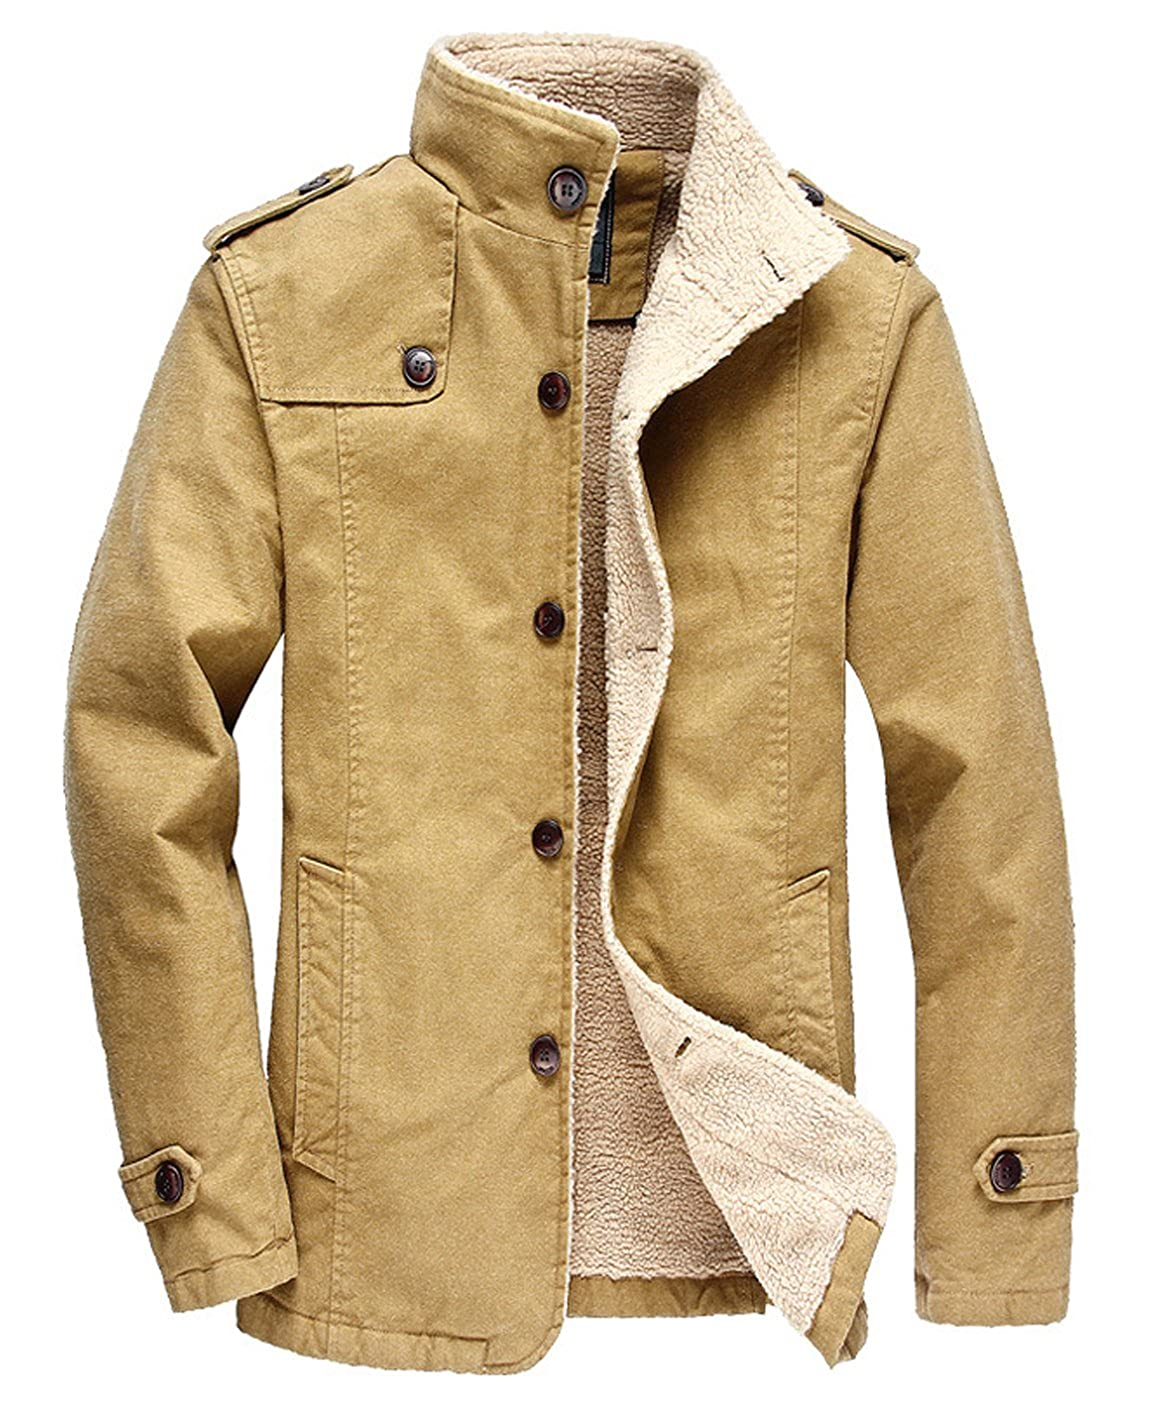 HOW'ON Men's Winter Fleece Casual Cotton Jacket Military Cargo Jacket Outwear Parka Winter Coat